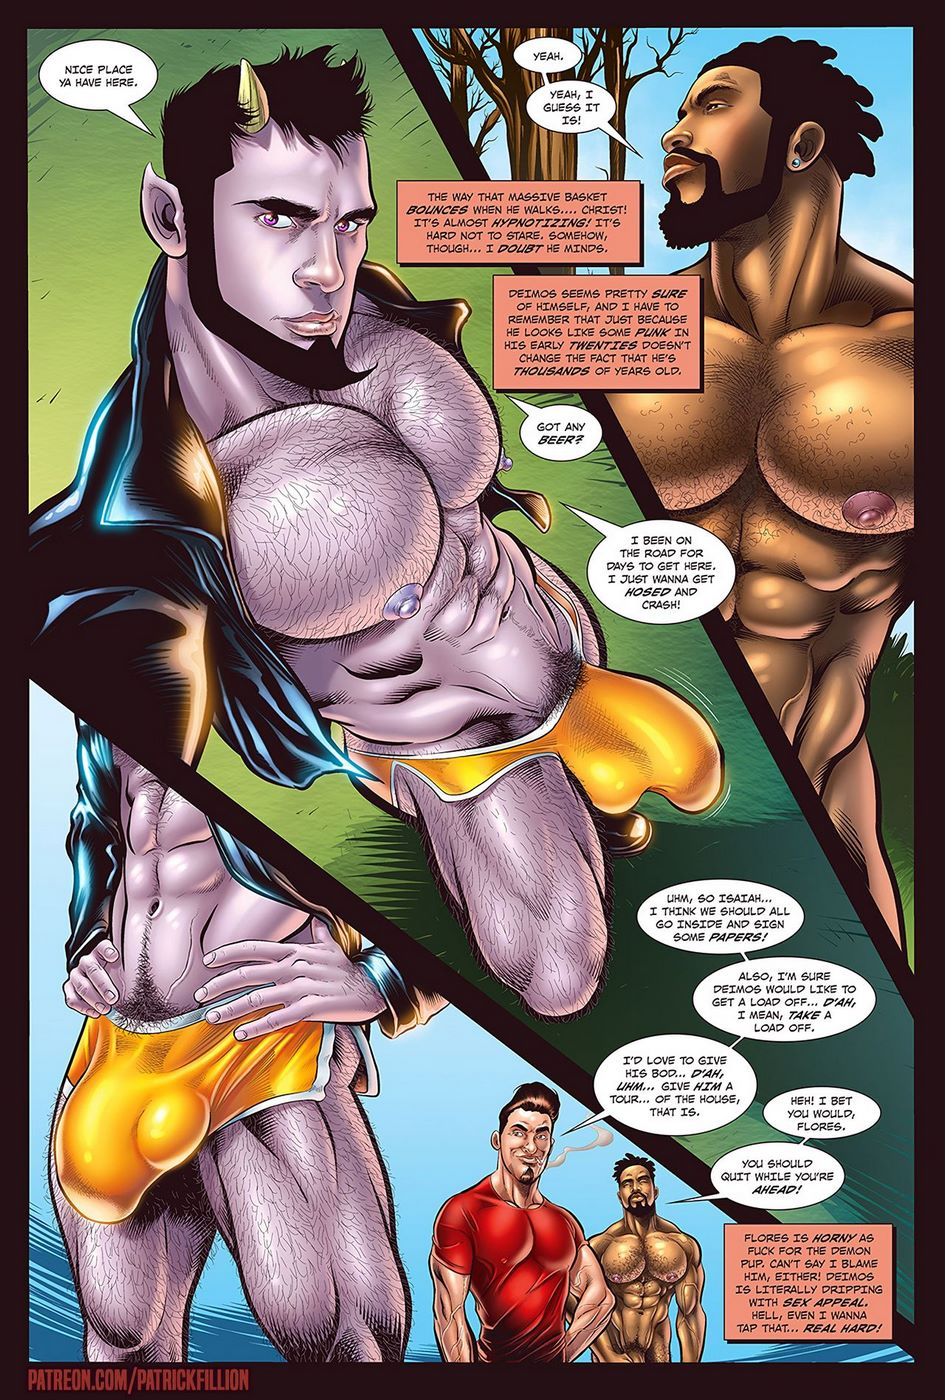 3D Gay Comic Porn patrick fillion] - gay for slay, huge cock anal sex • free